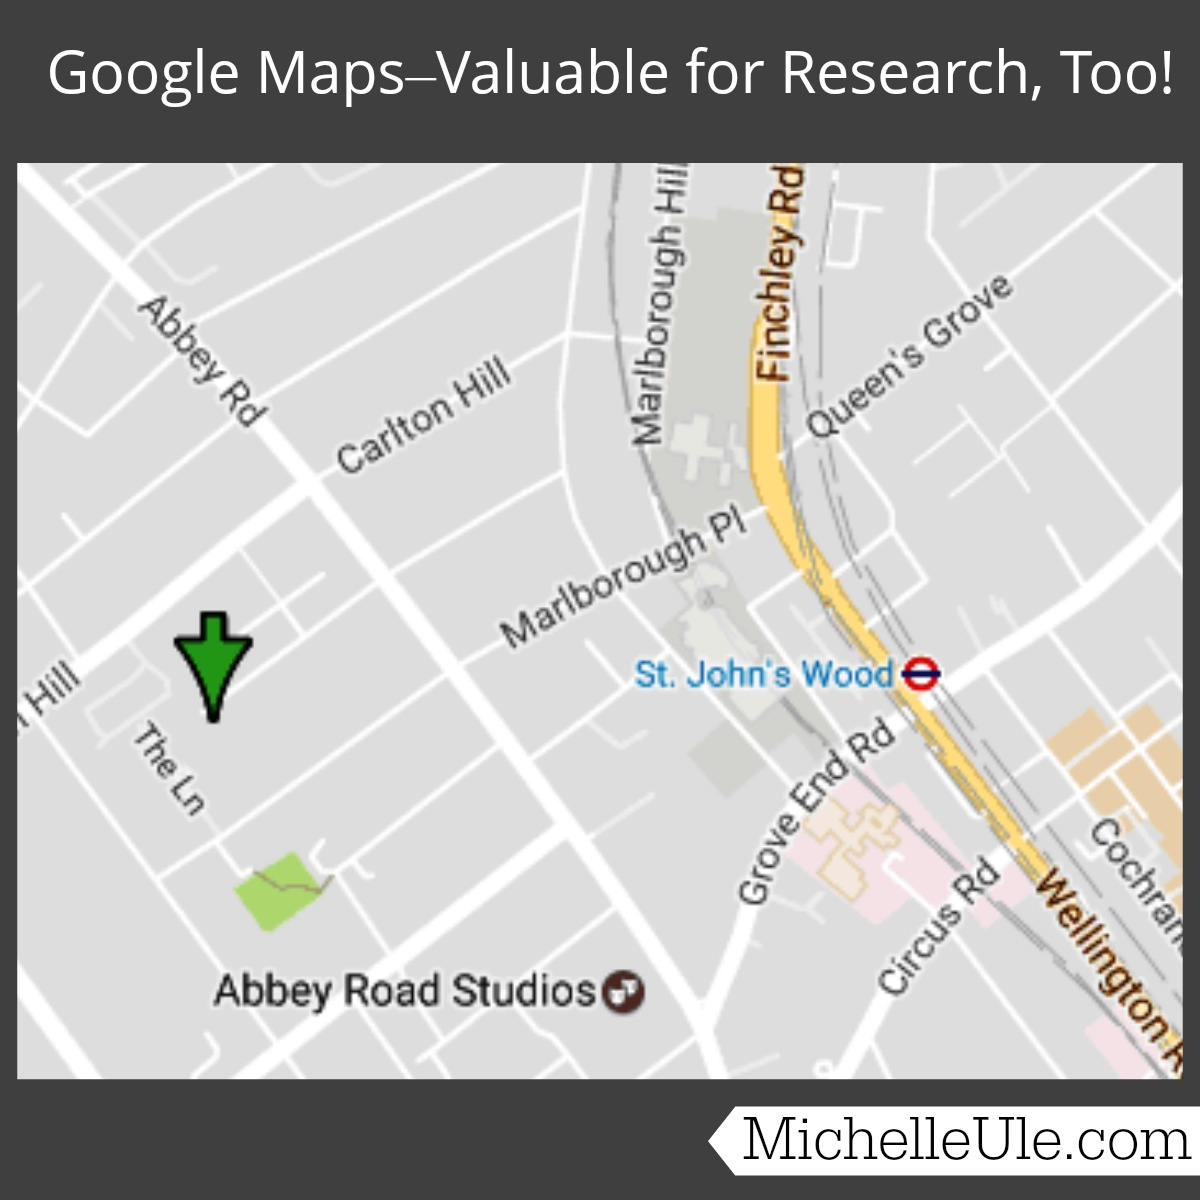 Google Maps--Valuable for Research, Too! | Mice Ule, Author on goodbye google maps, new jersey google maps, animals google maps, bourbon street google maps, 1999 google maps,